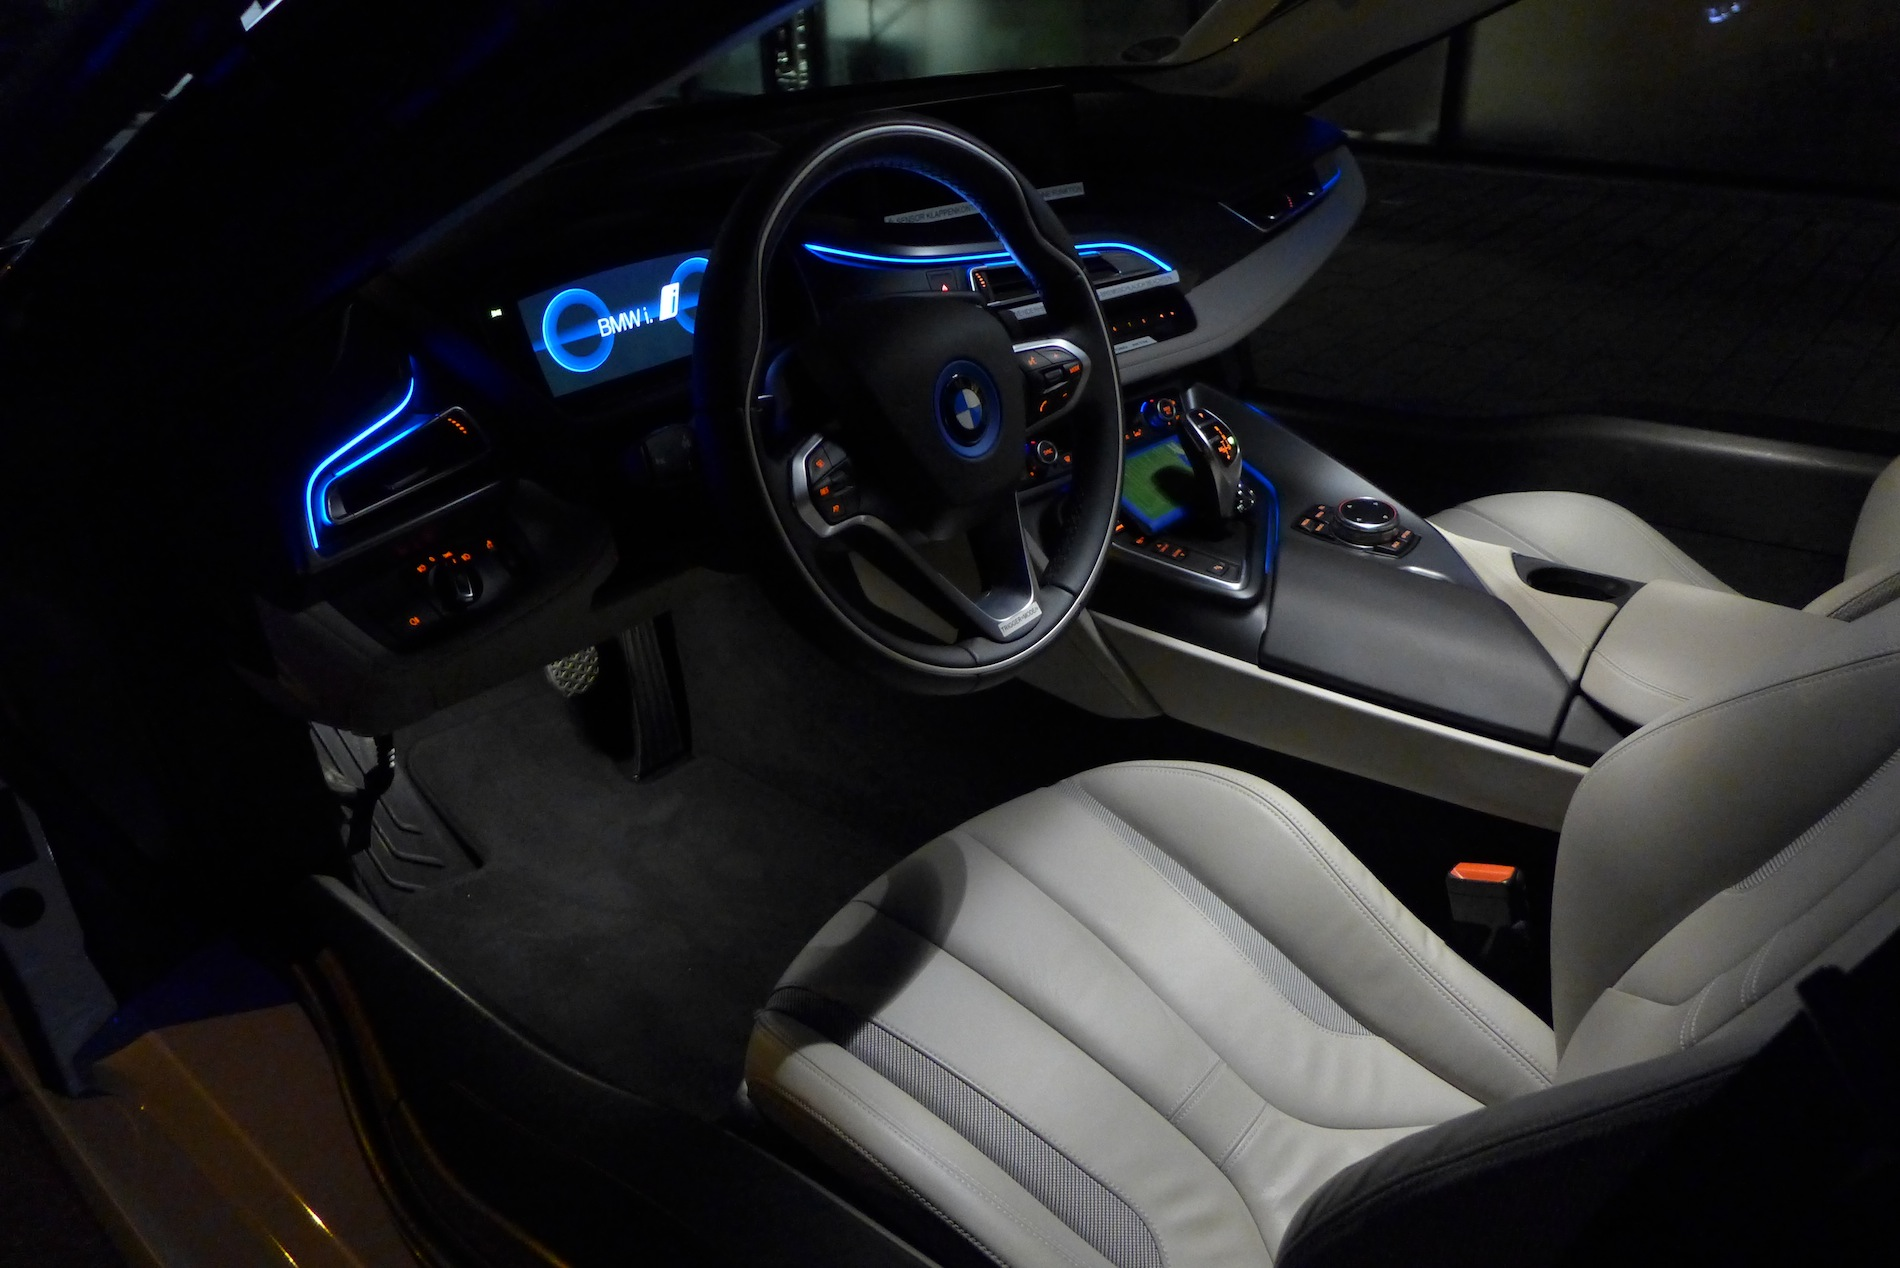 Photo Gallery Bmw I8 Interior At Night Autoevolution